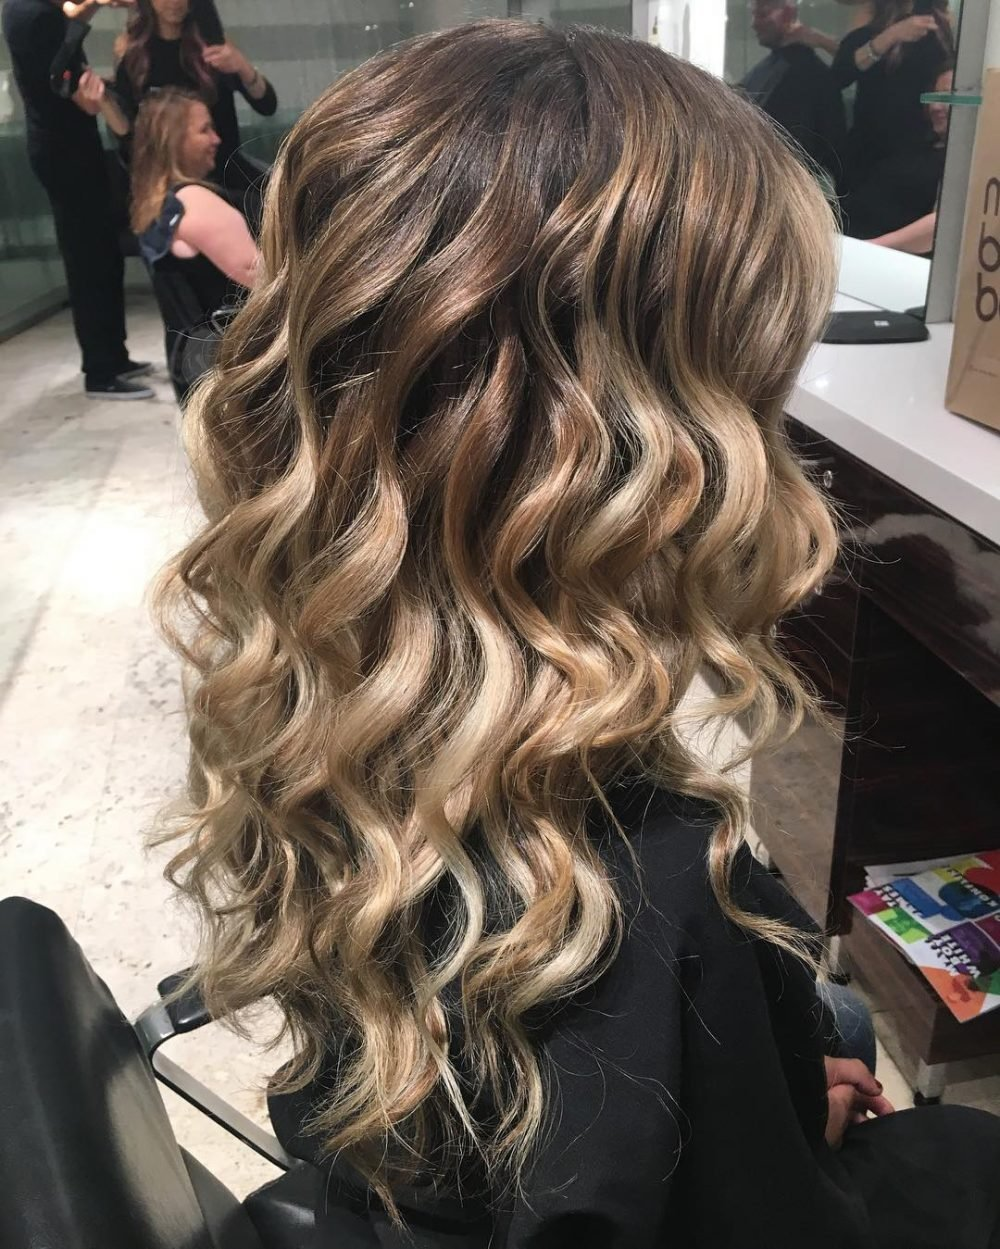 New Curly Hairstyles For Prom Ideas With Pictures